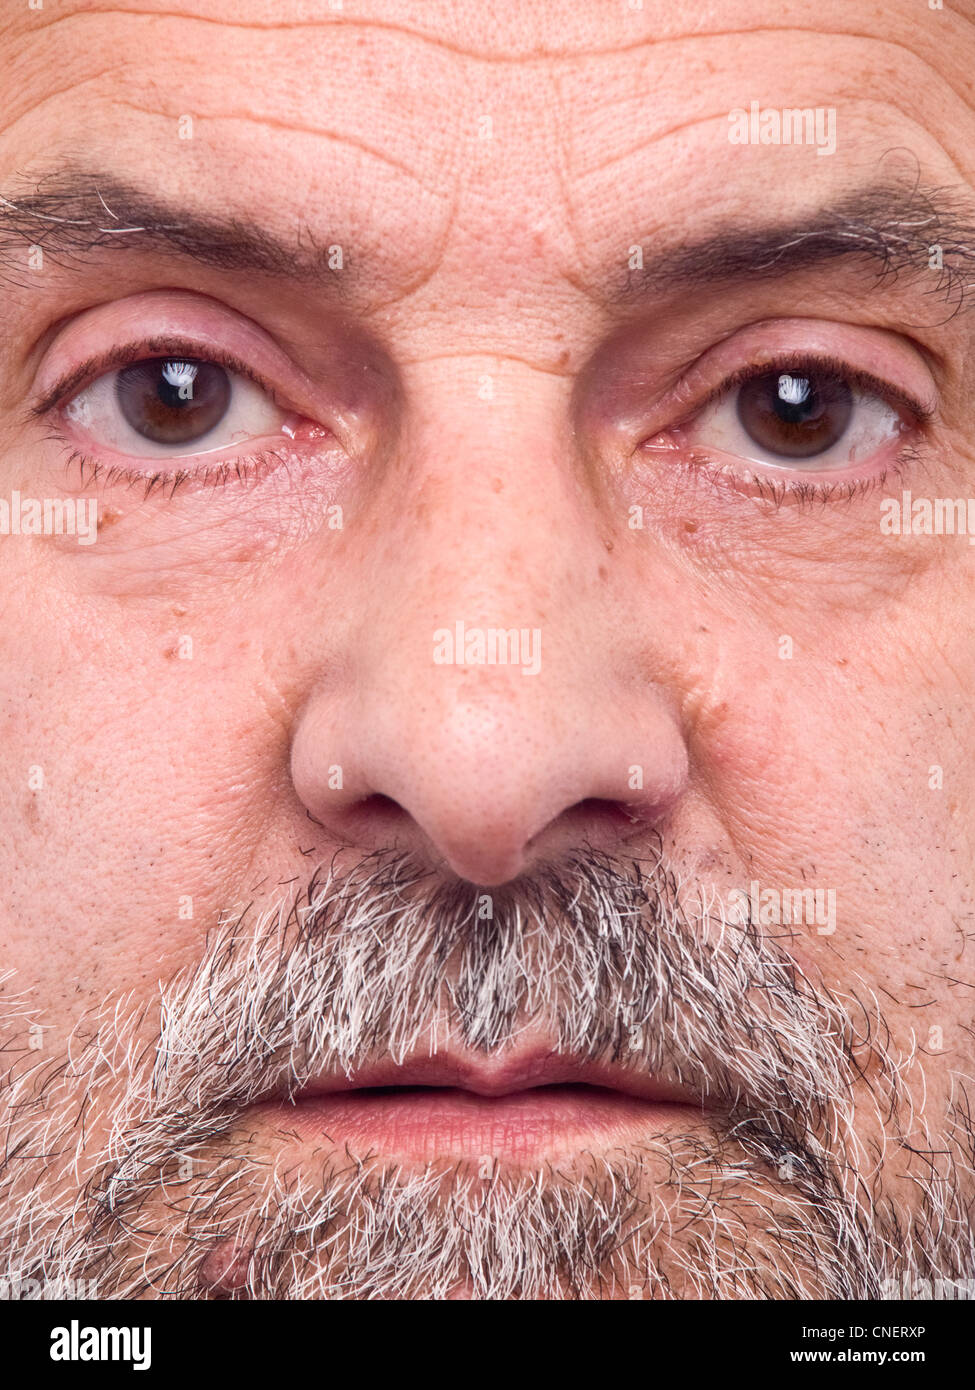 Extreme close up portrait of middle aged bearded man - Stock Image